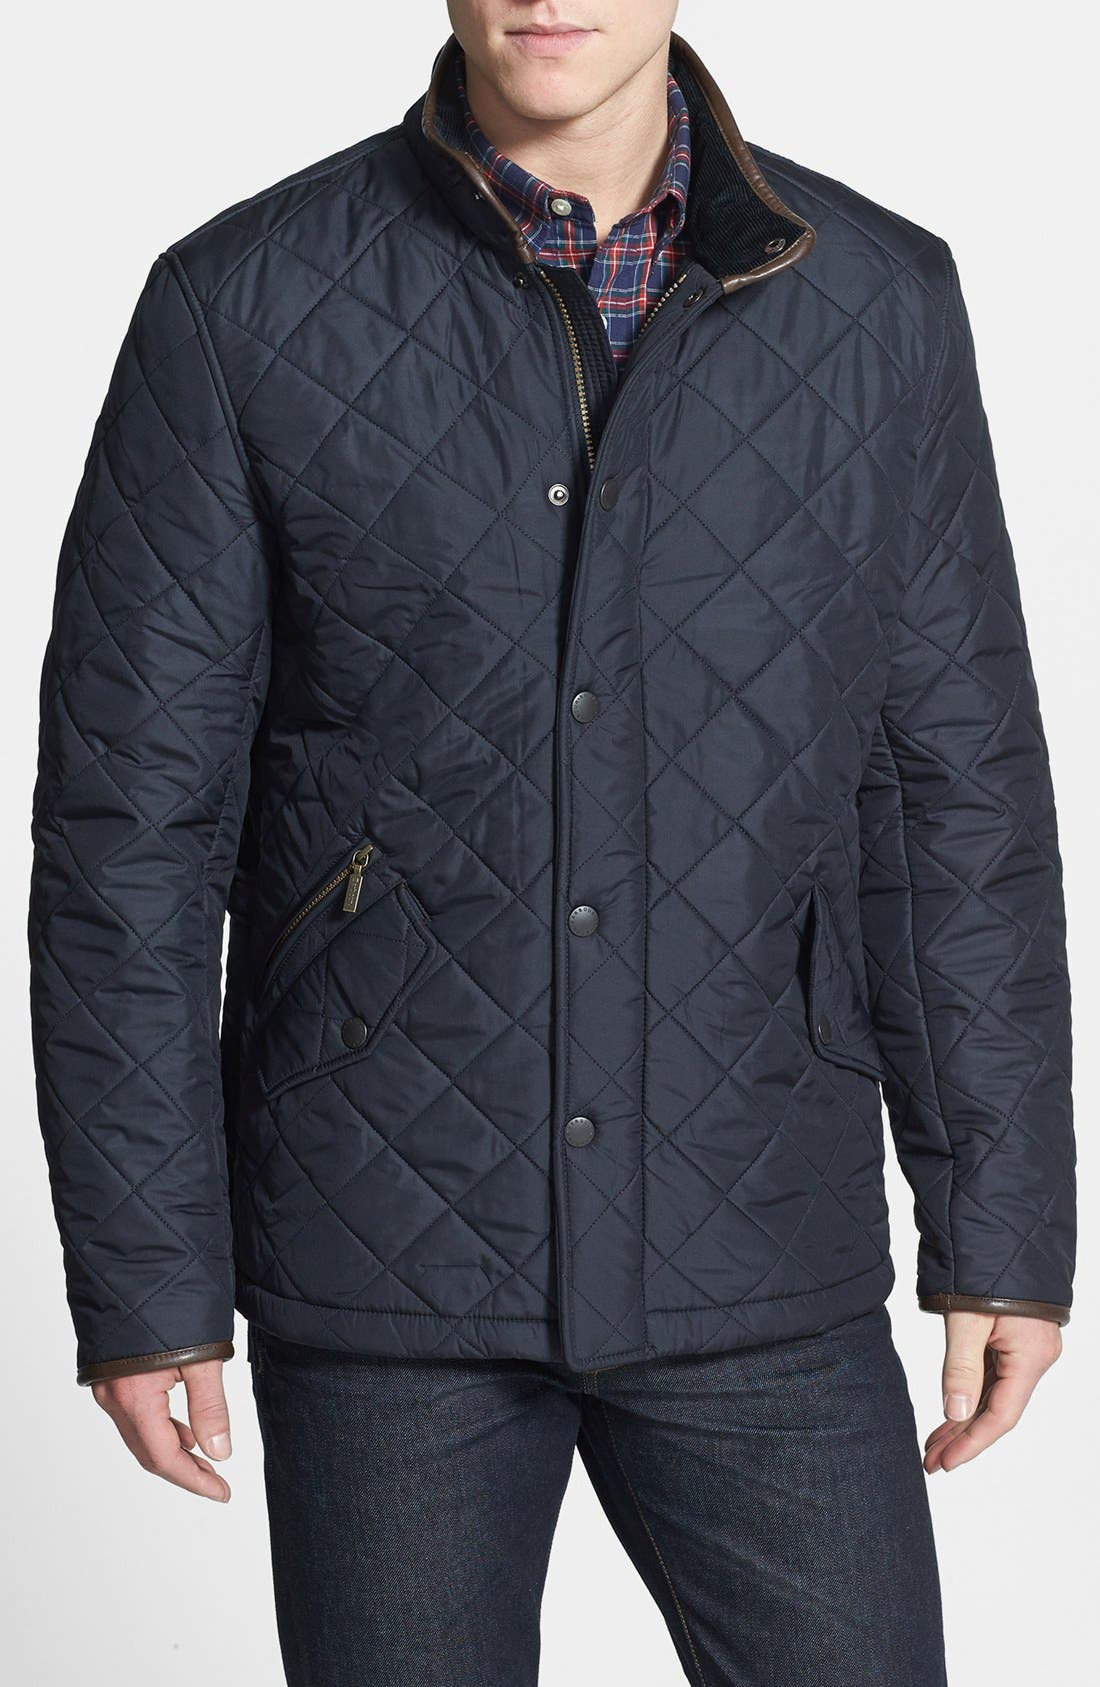 Barbour 'Powell' Quilted Jacket